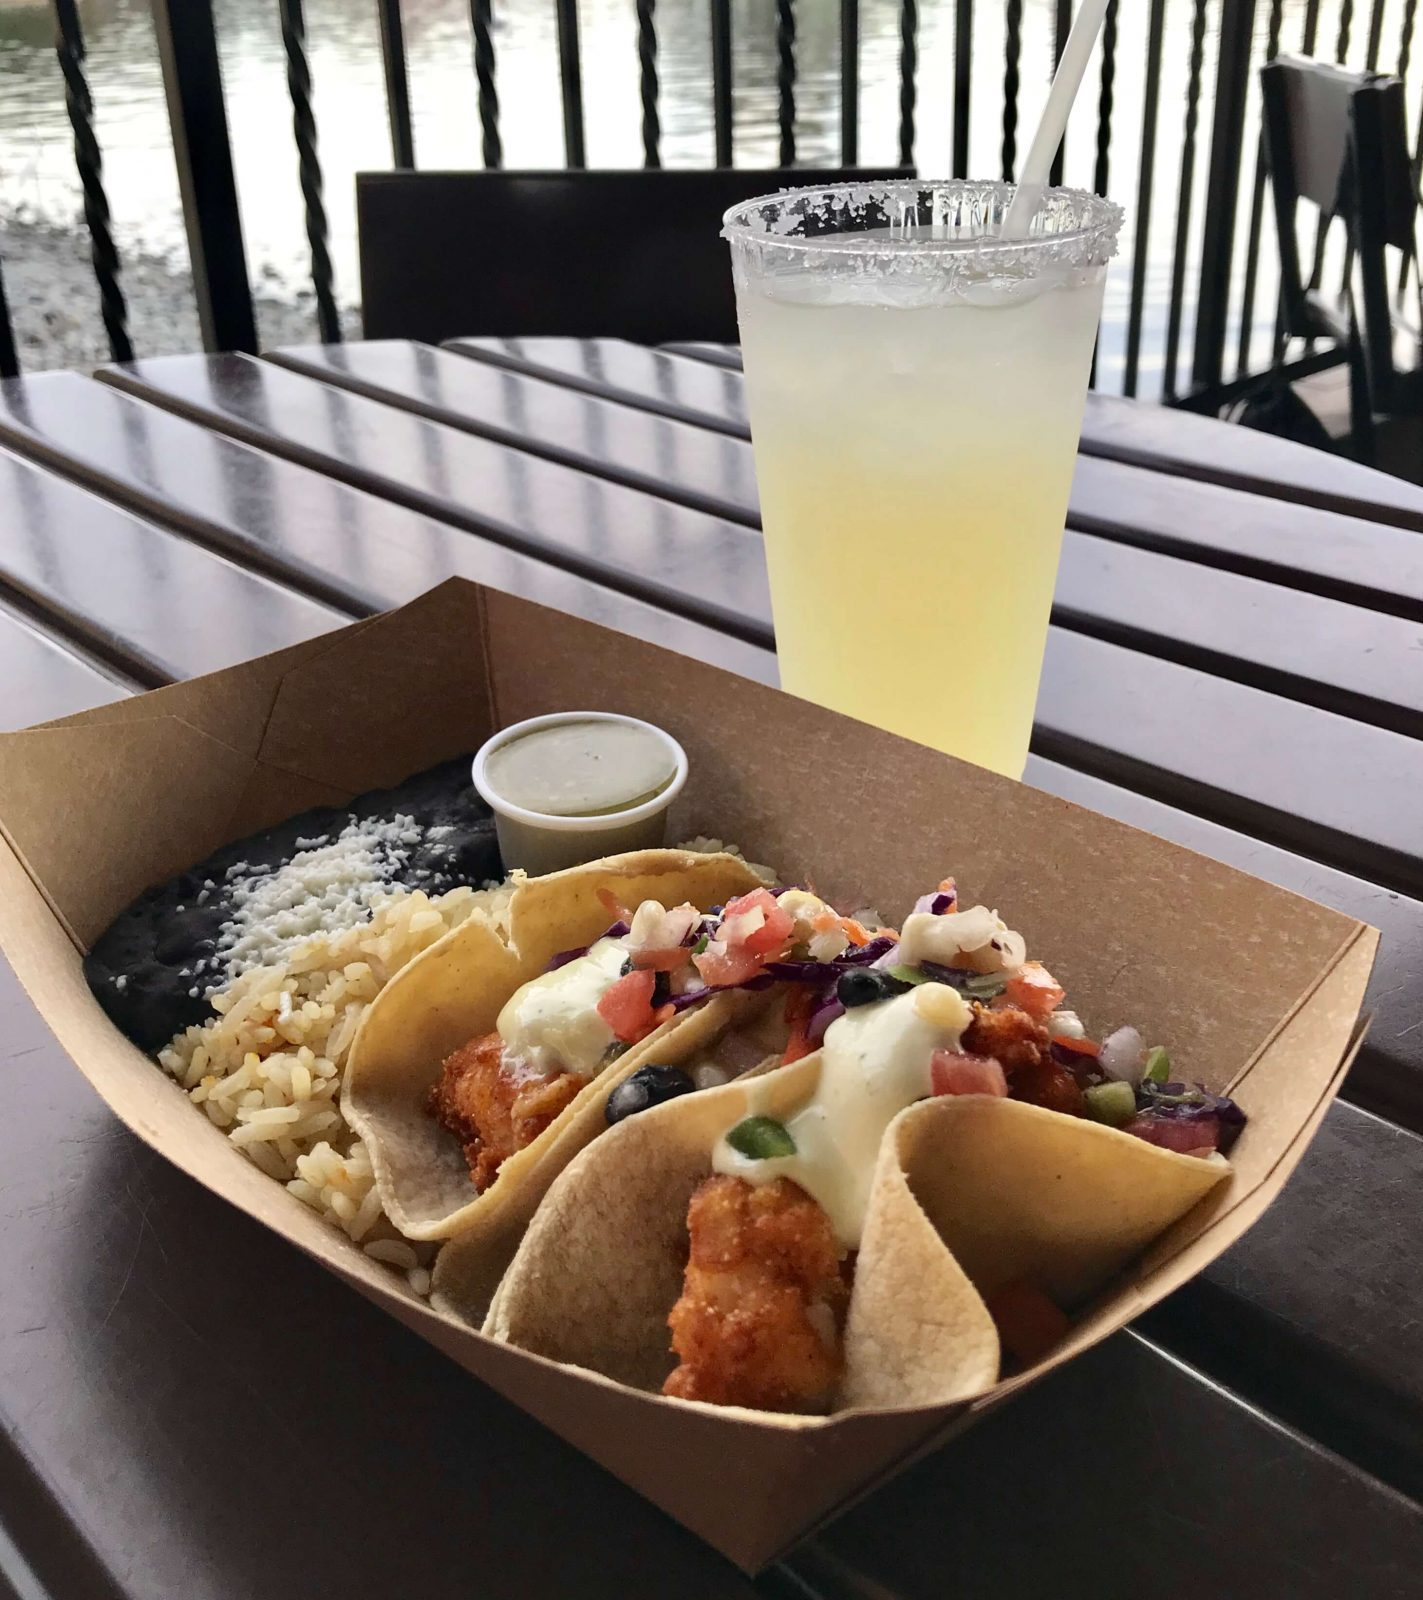 Tips and tricks for getting the most out of the Disney Dining Plan at Walt Disney World! #disneyworld #familytravel